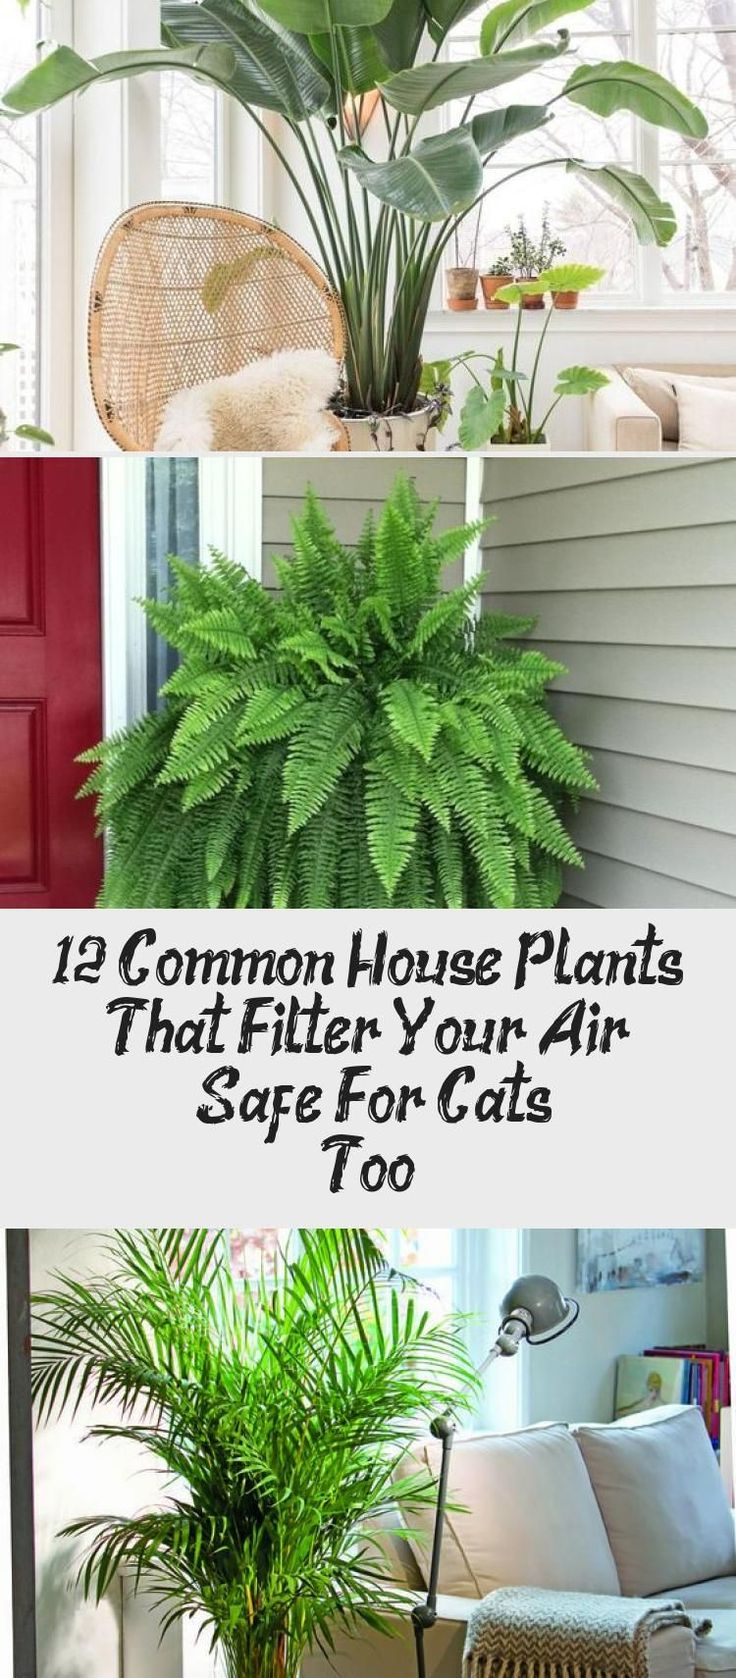 12 Common House Plants That Filter Your Air - Safe For ...